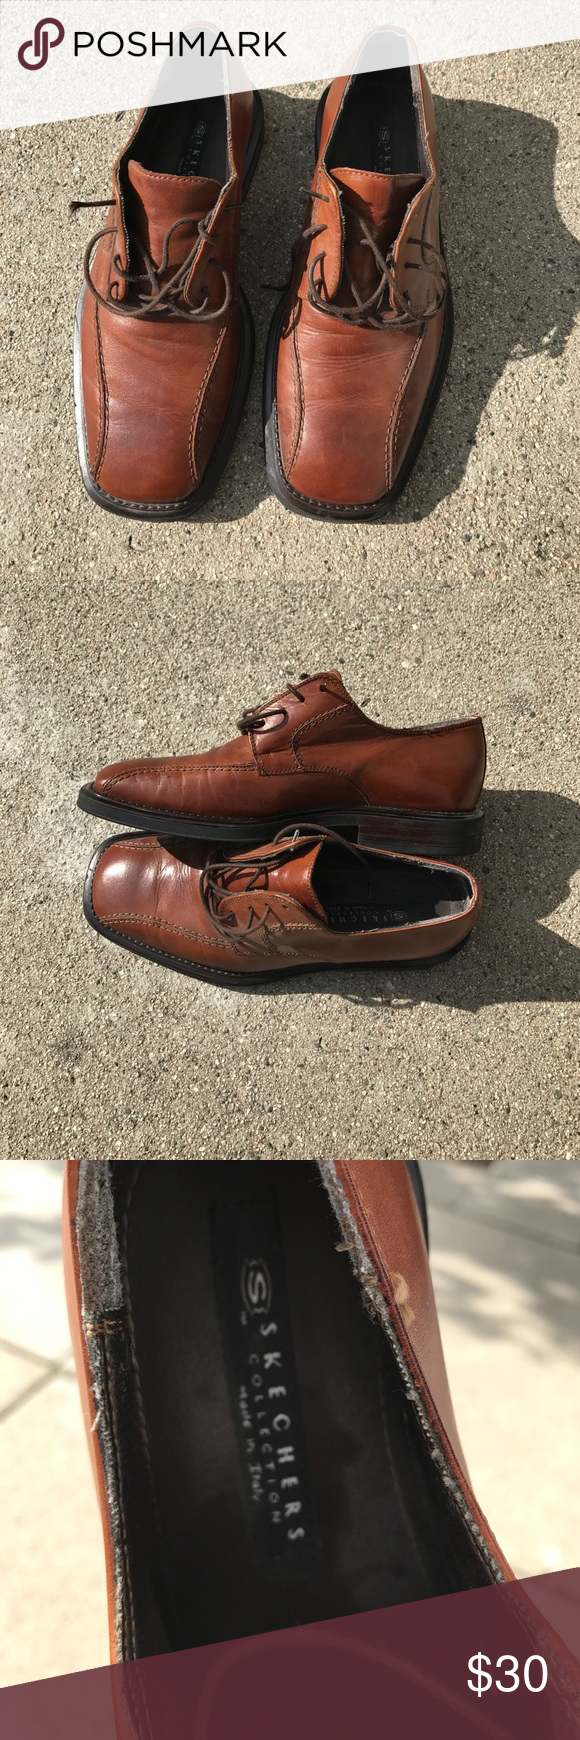 Men's Skechers made in Italy dress shoes Made in Italy 5OLJA